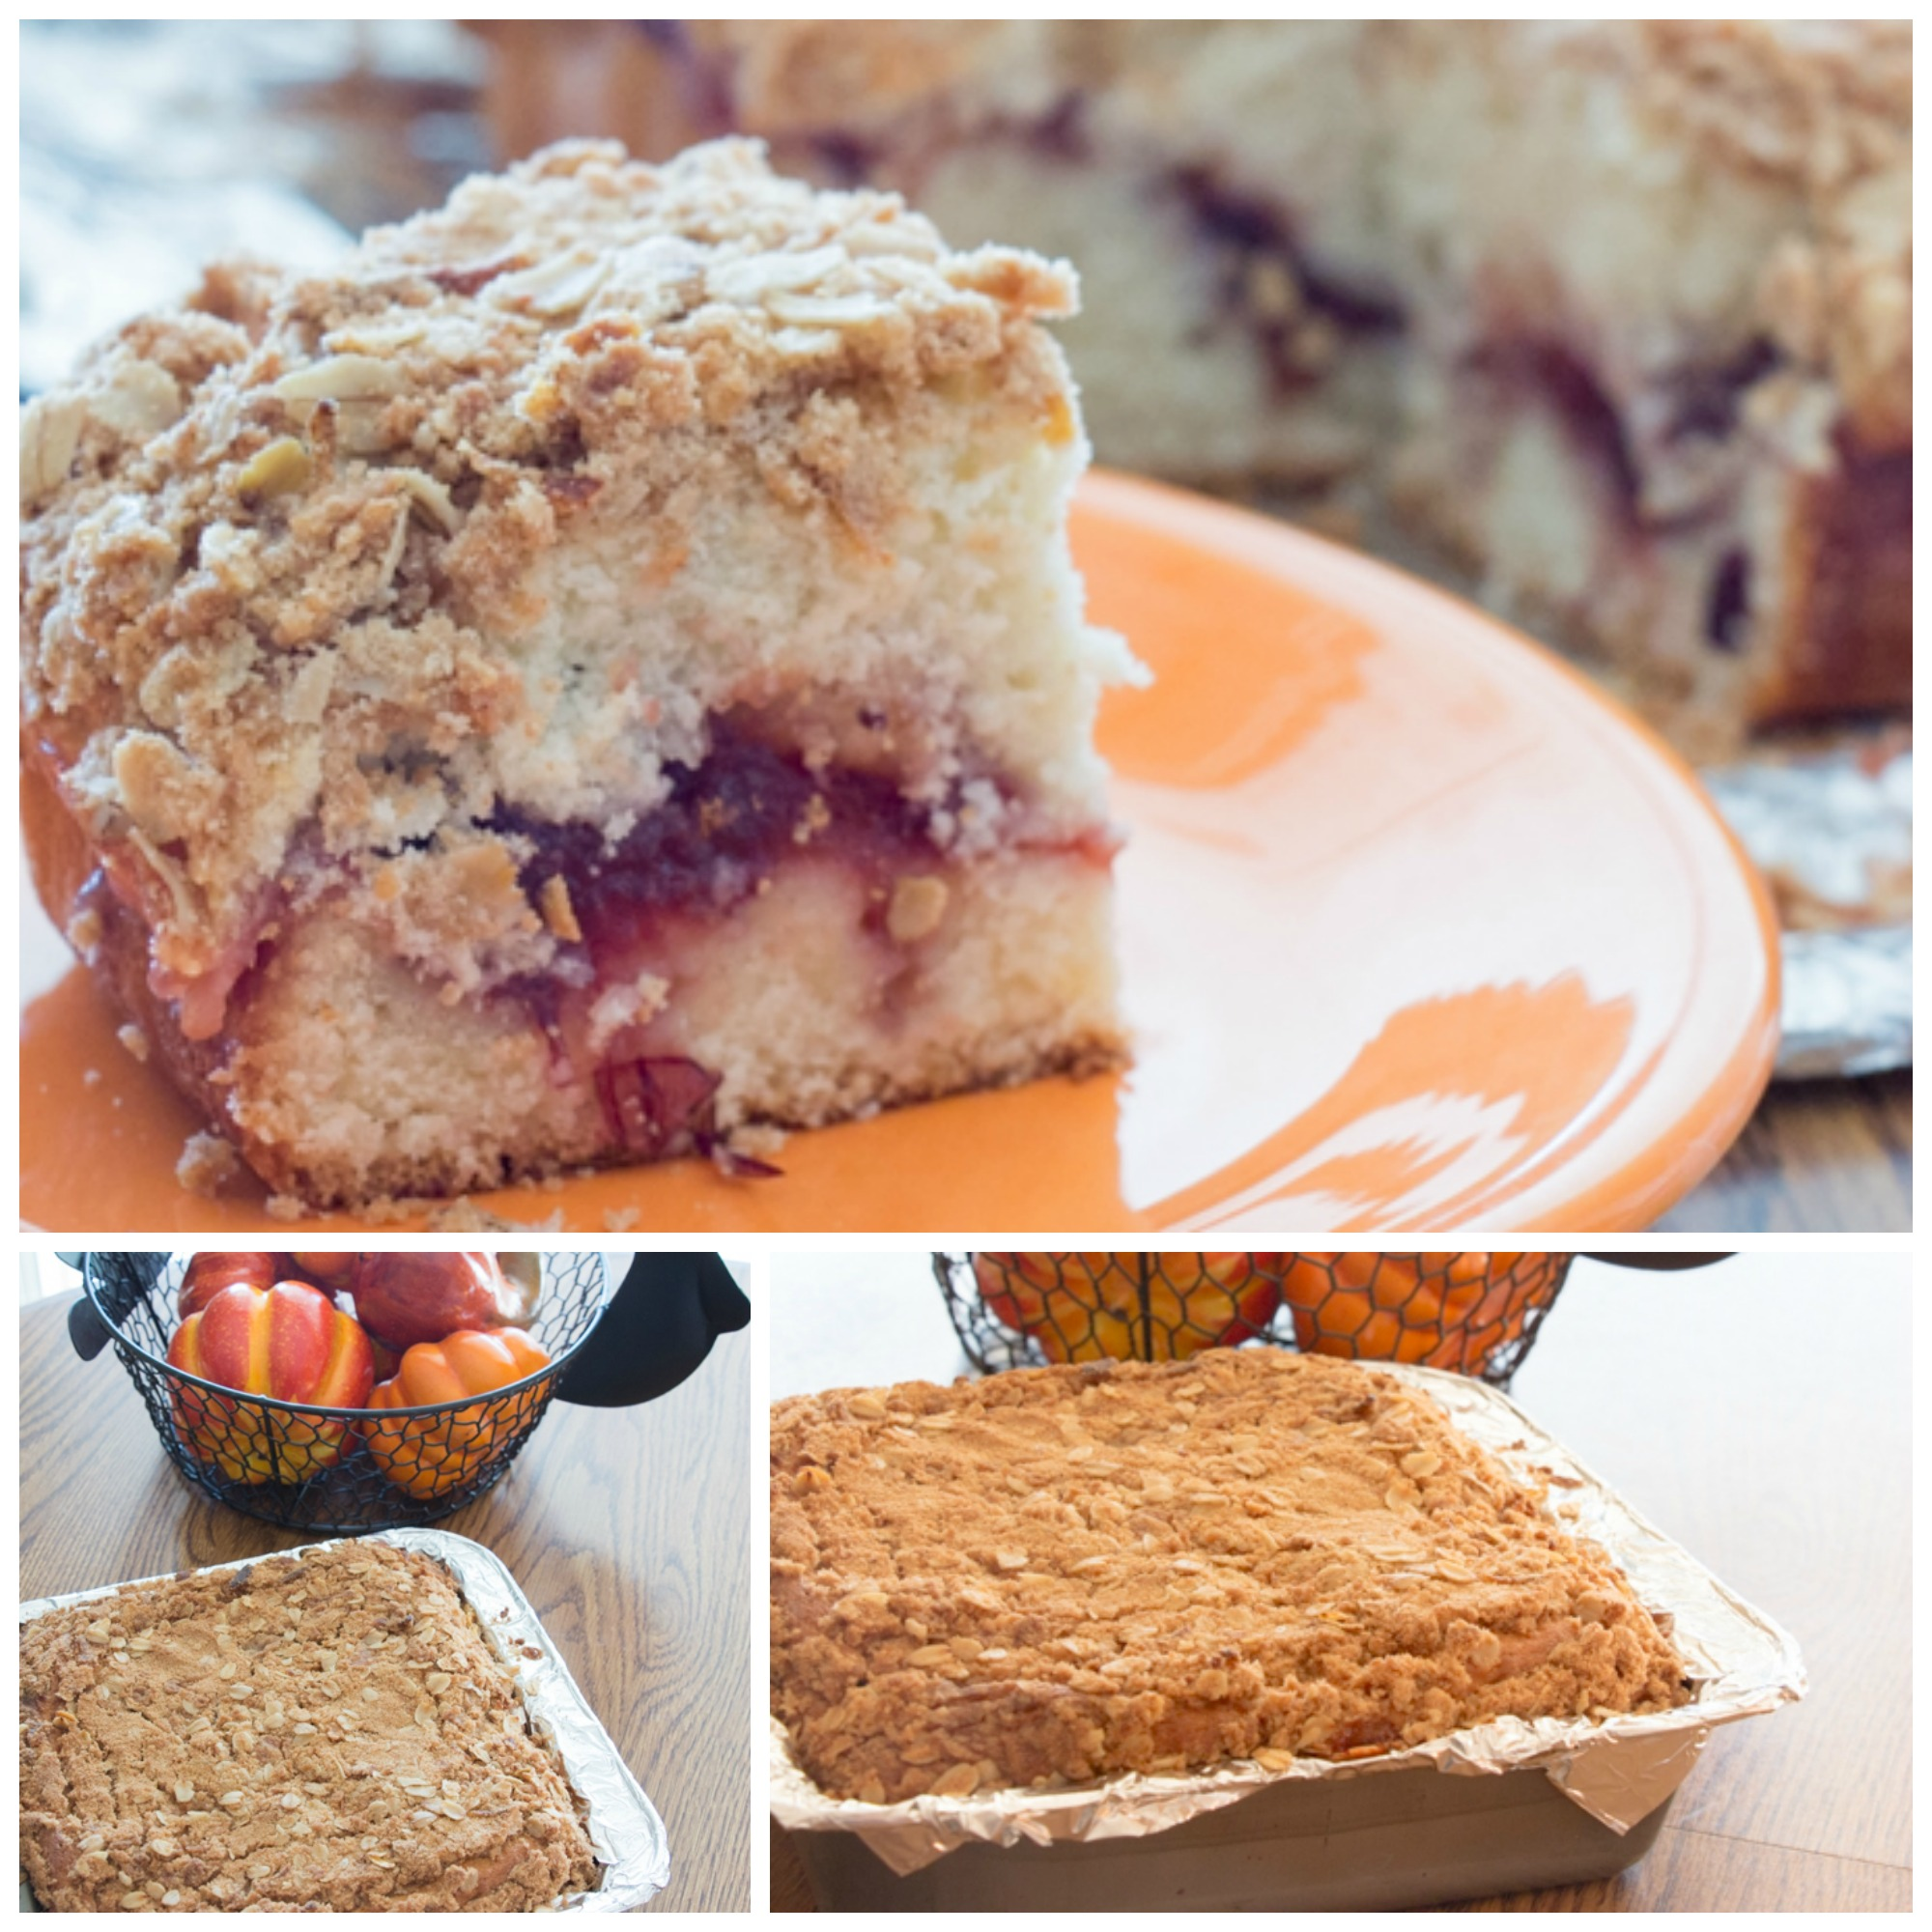 The Way Of Making A Red-Grape Coffee Cake